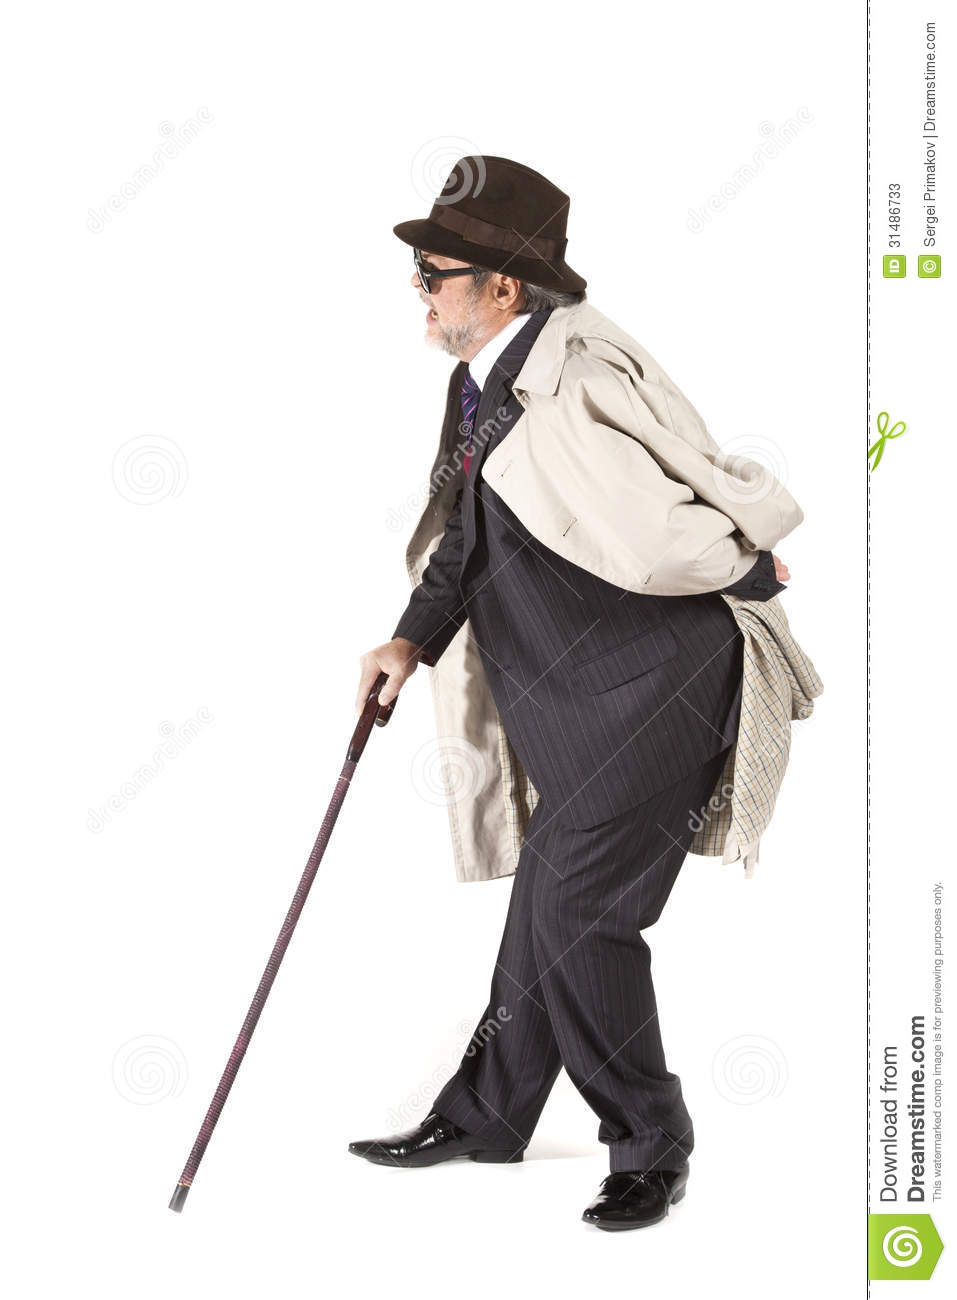 Old Man With A Cane Stock Photos - Image: 31486733